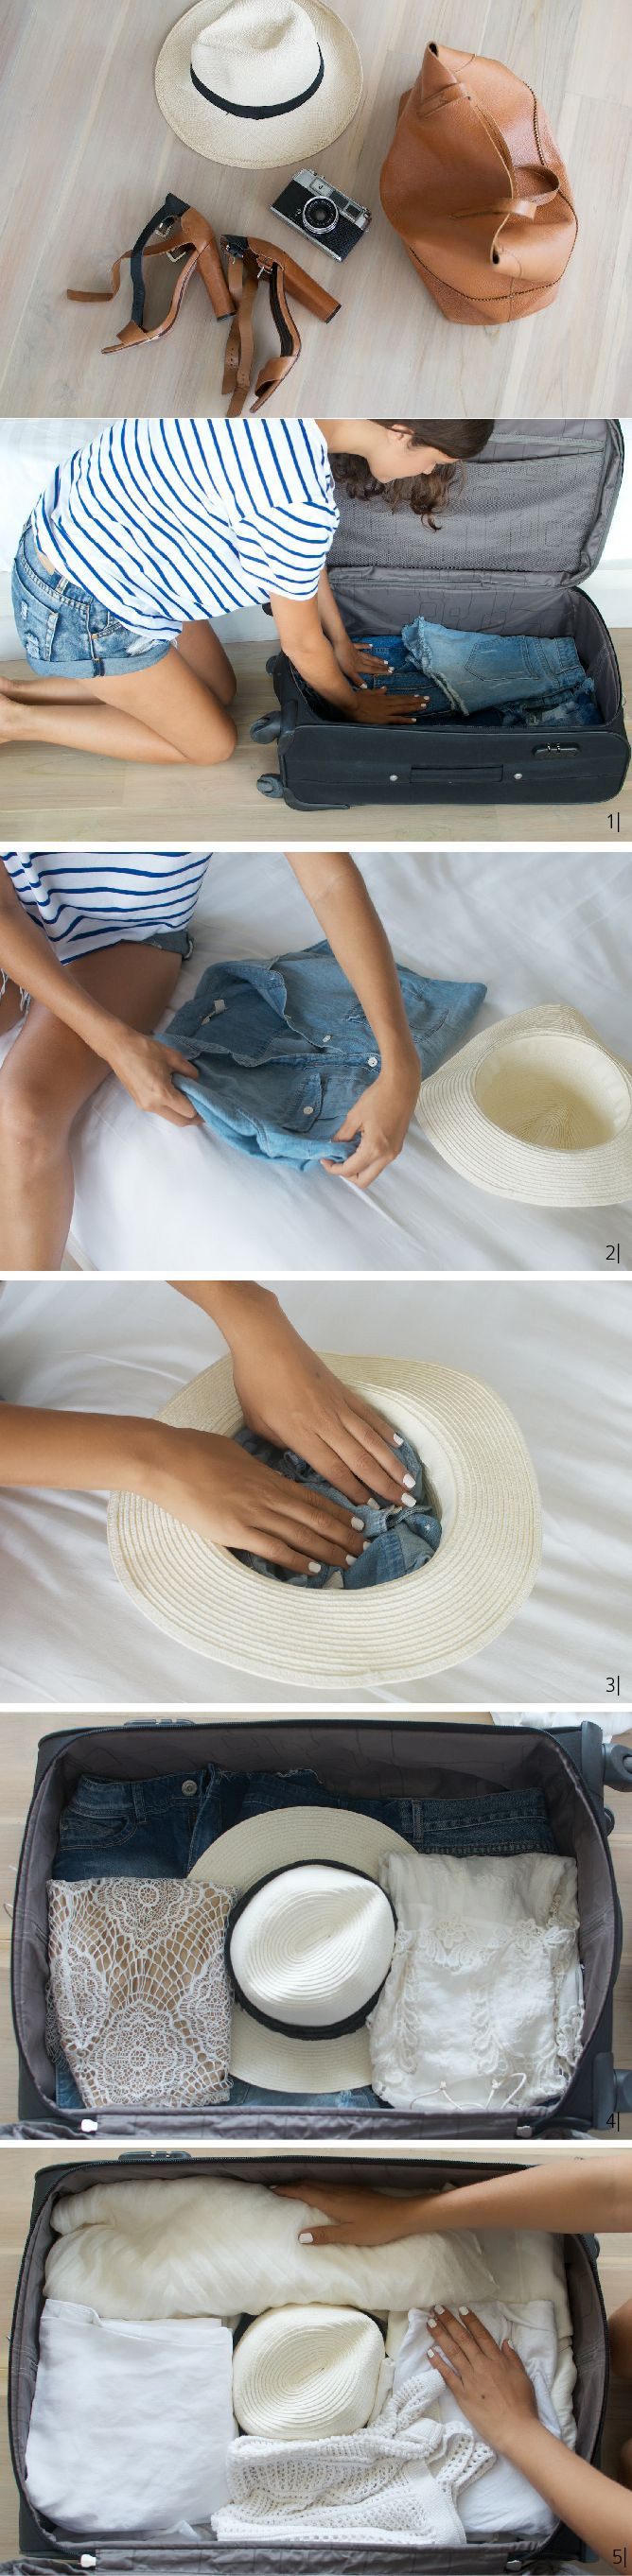 DIY How to packing a Hat in Hand Luggage #packing #diy #DIYMakeIt http://diymakeit.com/diy-how-to-packing-hat-in-hand-luggage/